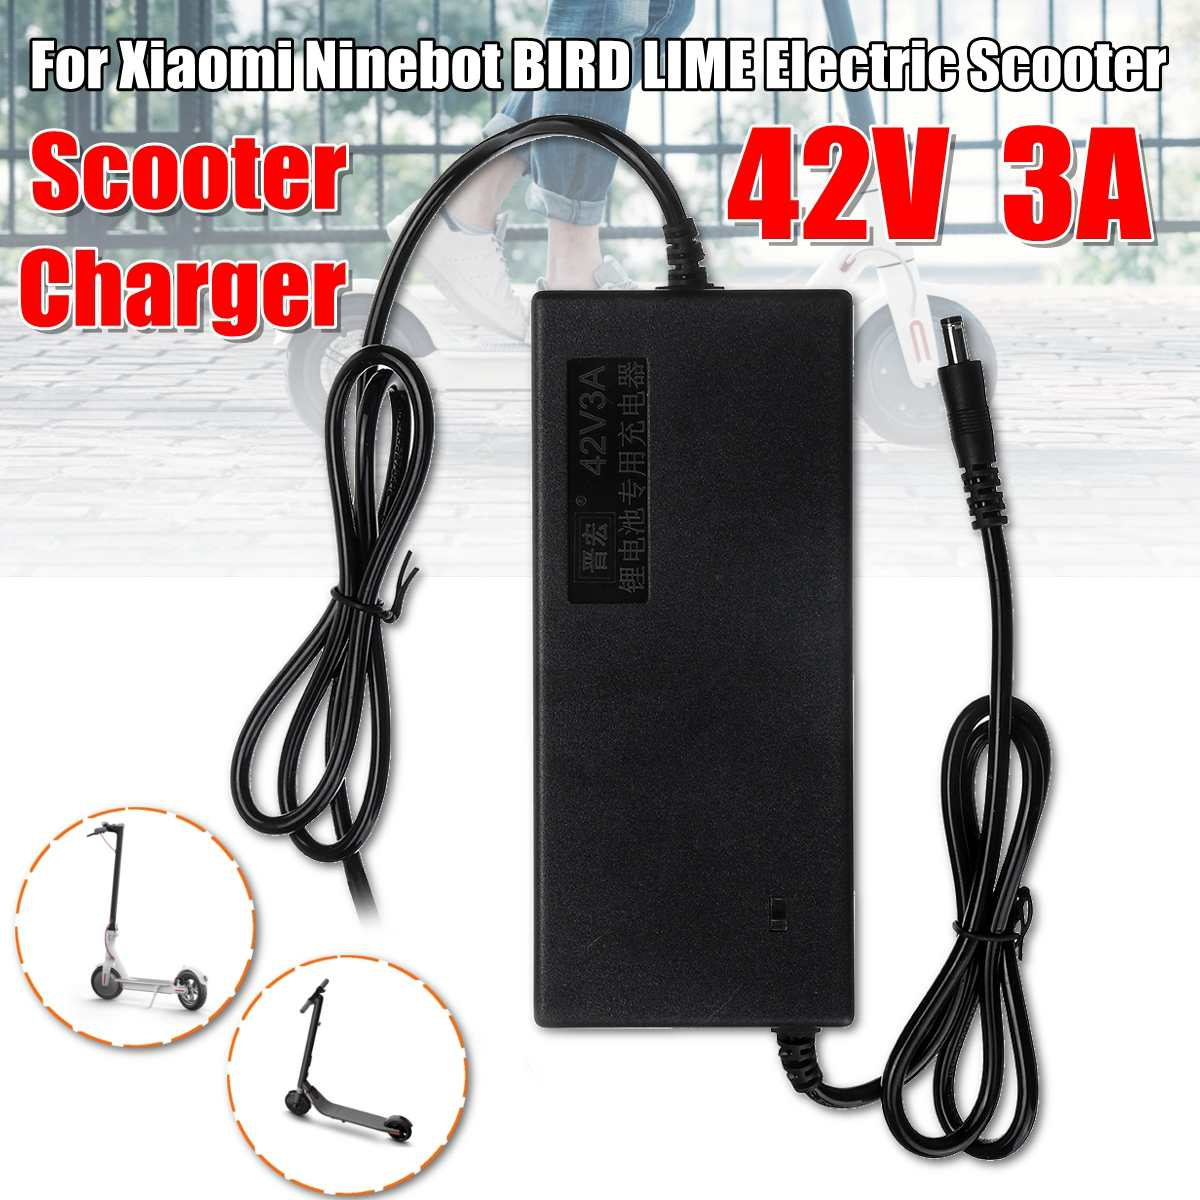 <font><b>42V</b></font> 3A Quick Power Battery Charger <font><b>Adapter</b></font> For Xiaomi Ninebot BIRD LIME Electric Scooter ES1/ES2/ES4/M365 image